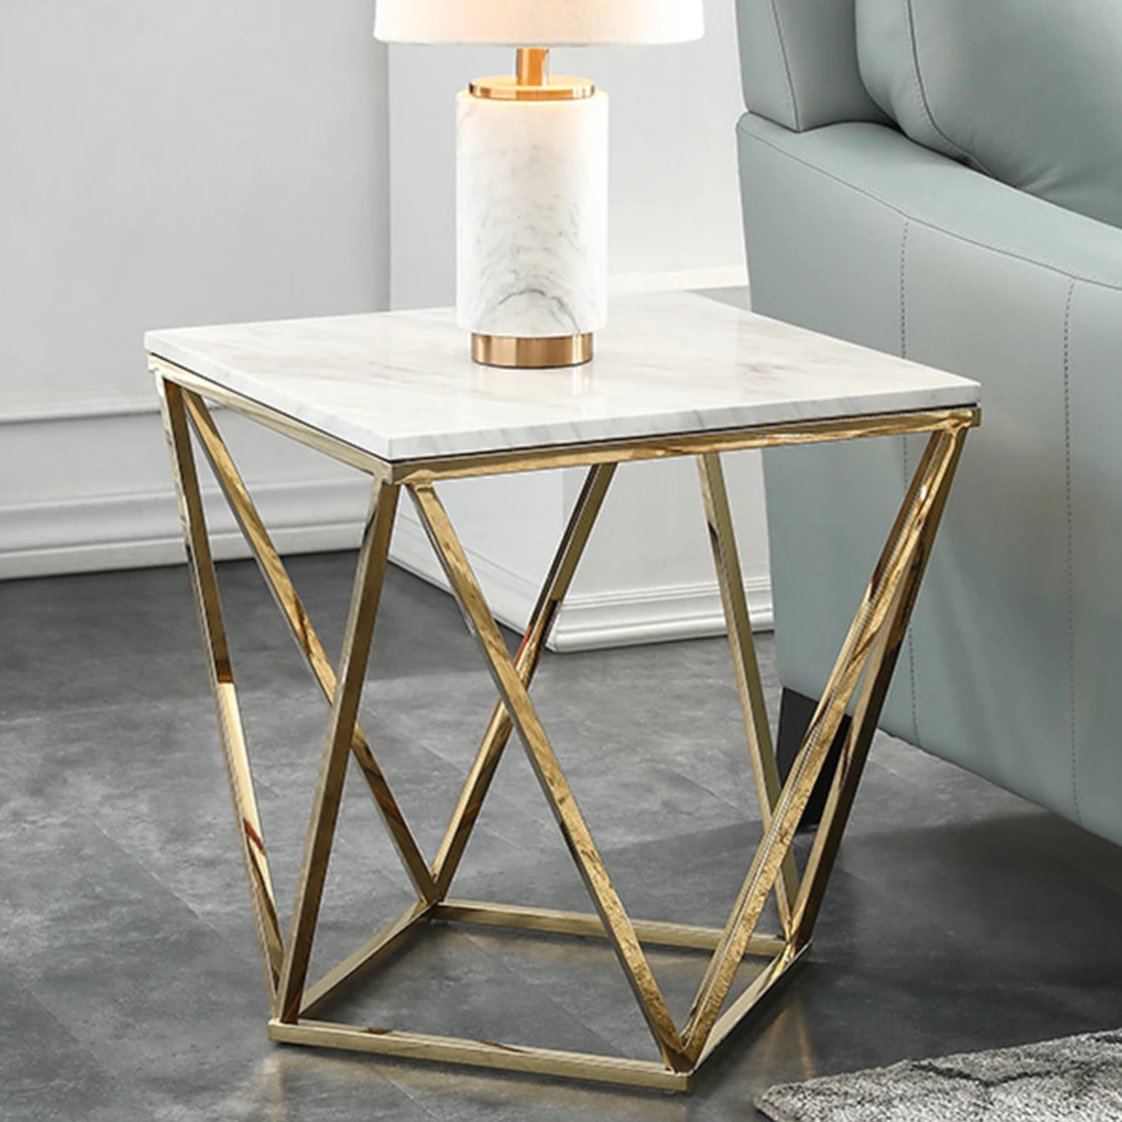 Marble Square End Table, White & Gold